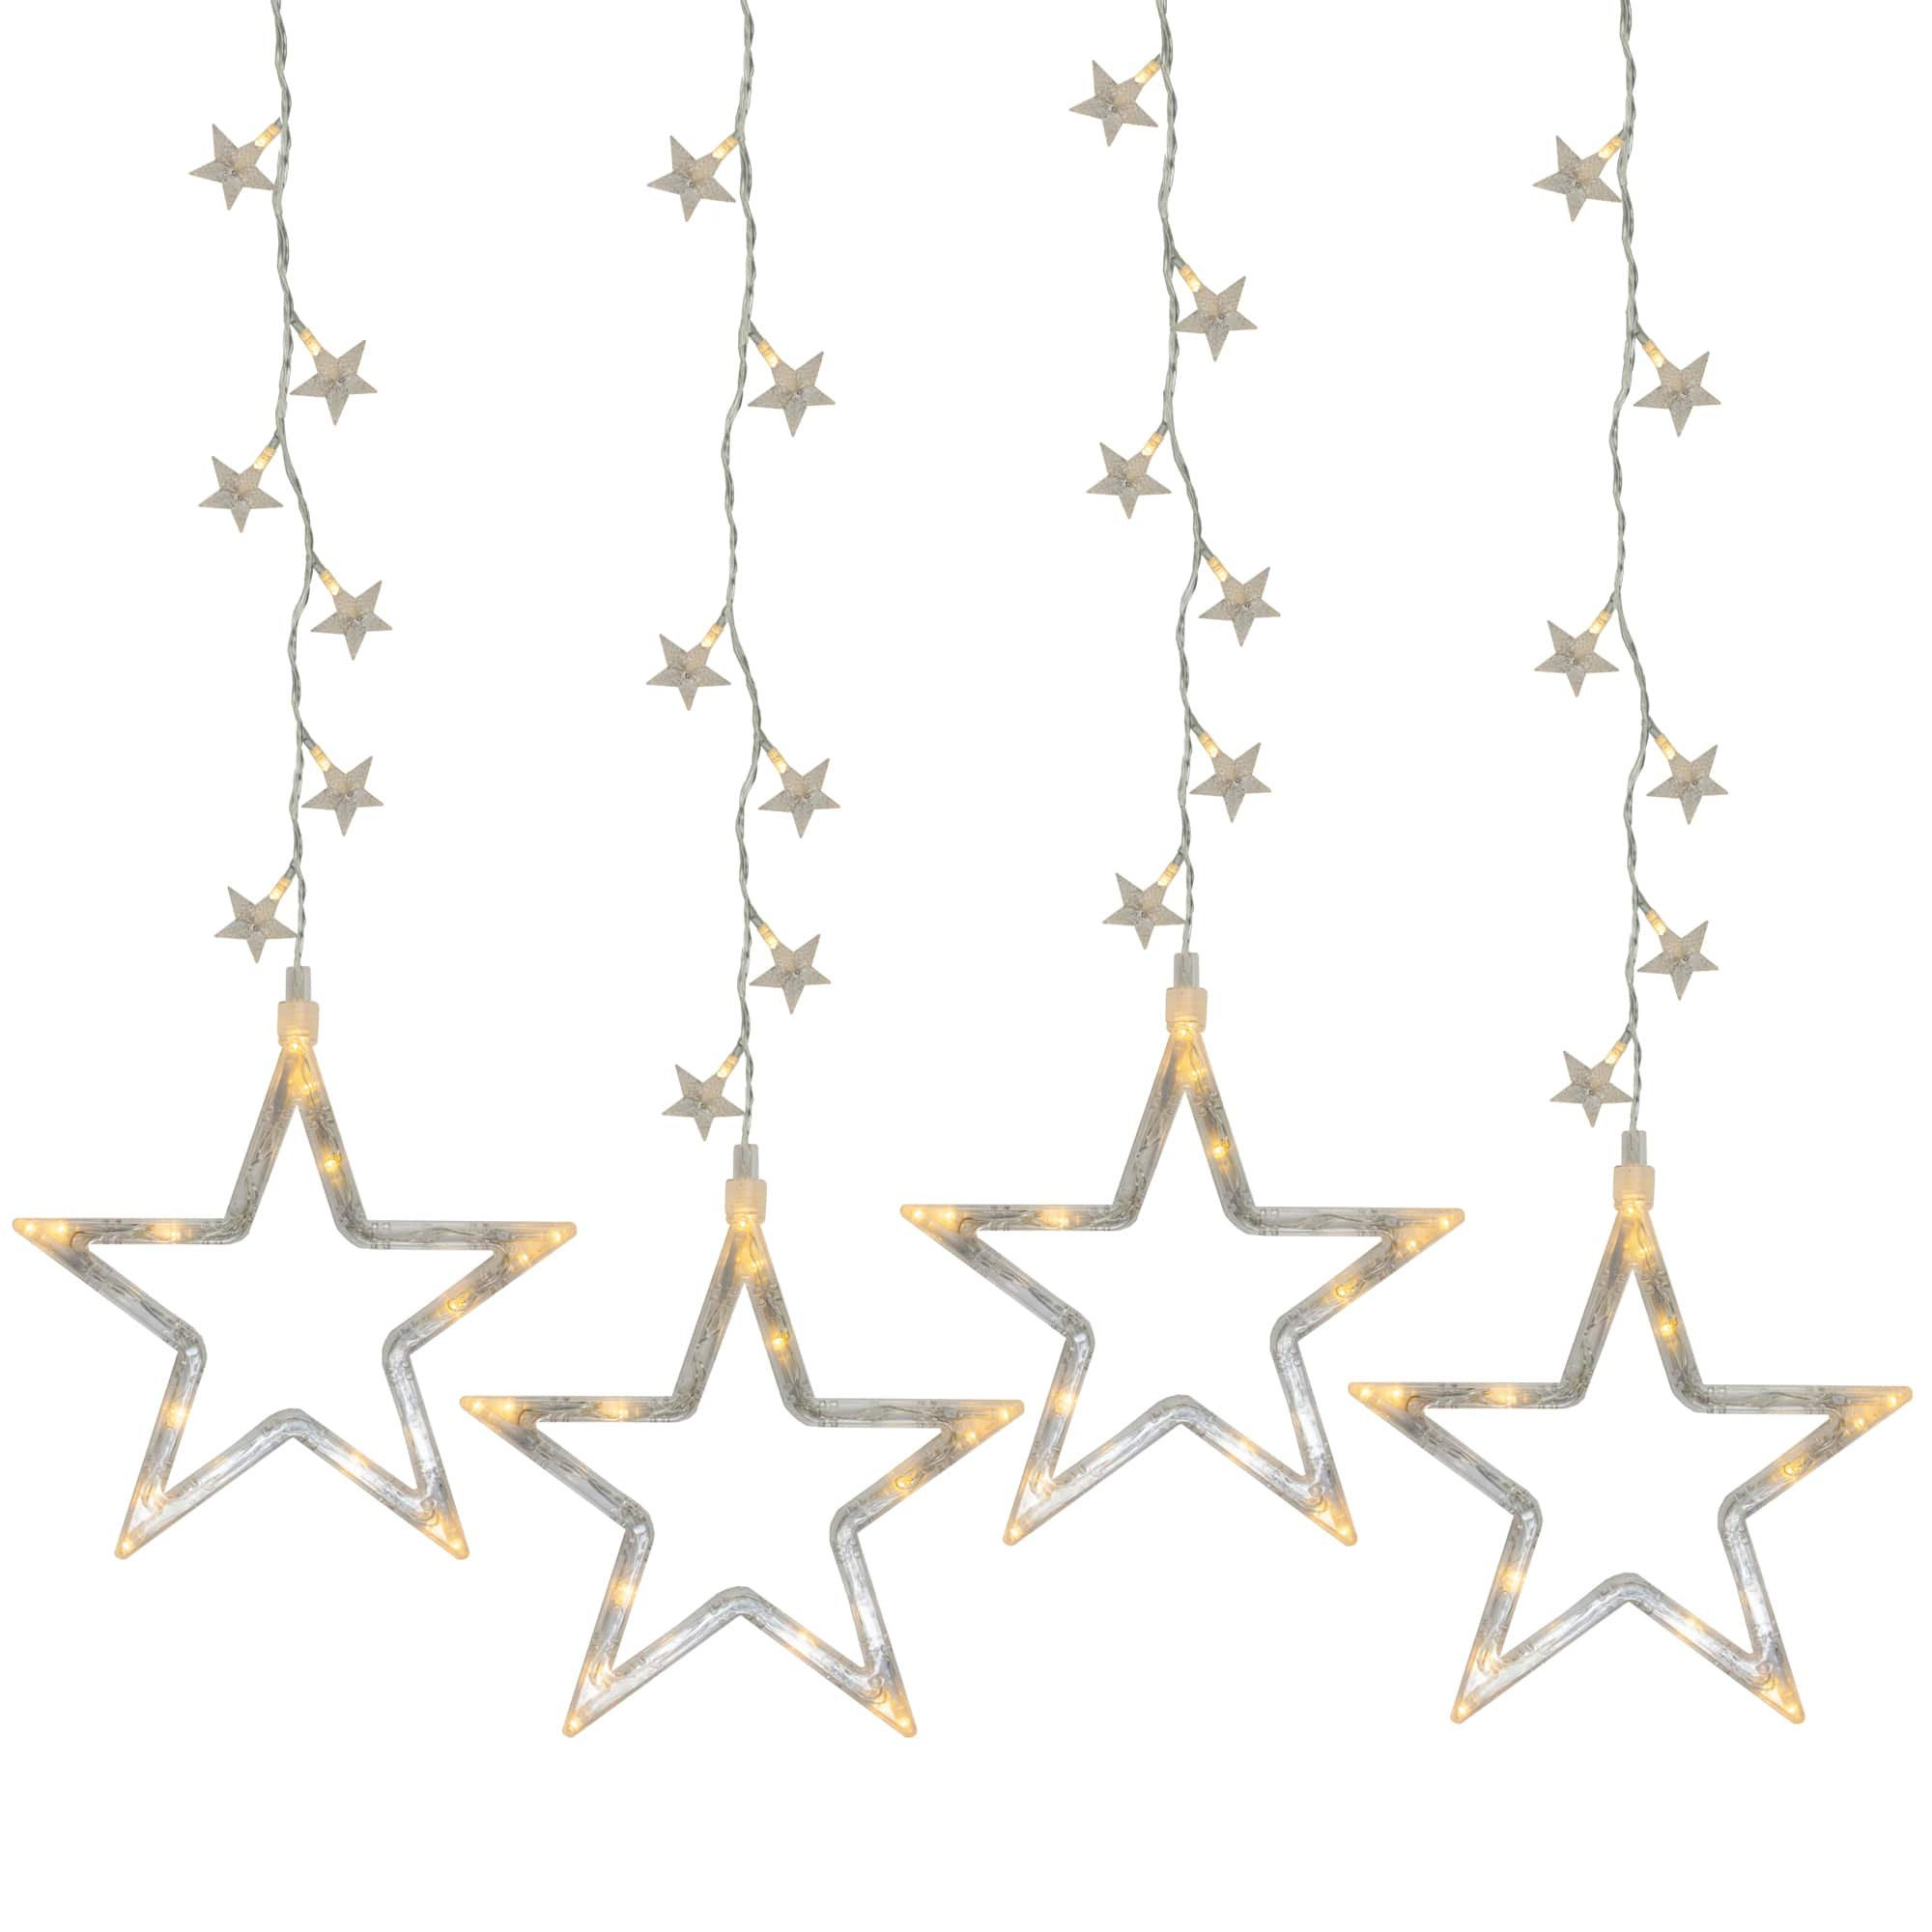 100ct clear led star silhouette window curtain lights